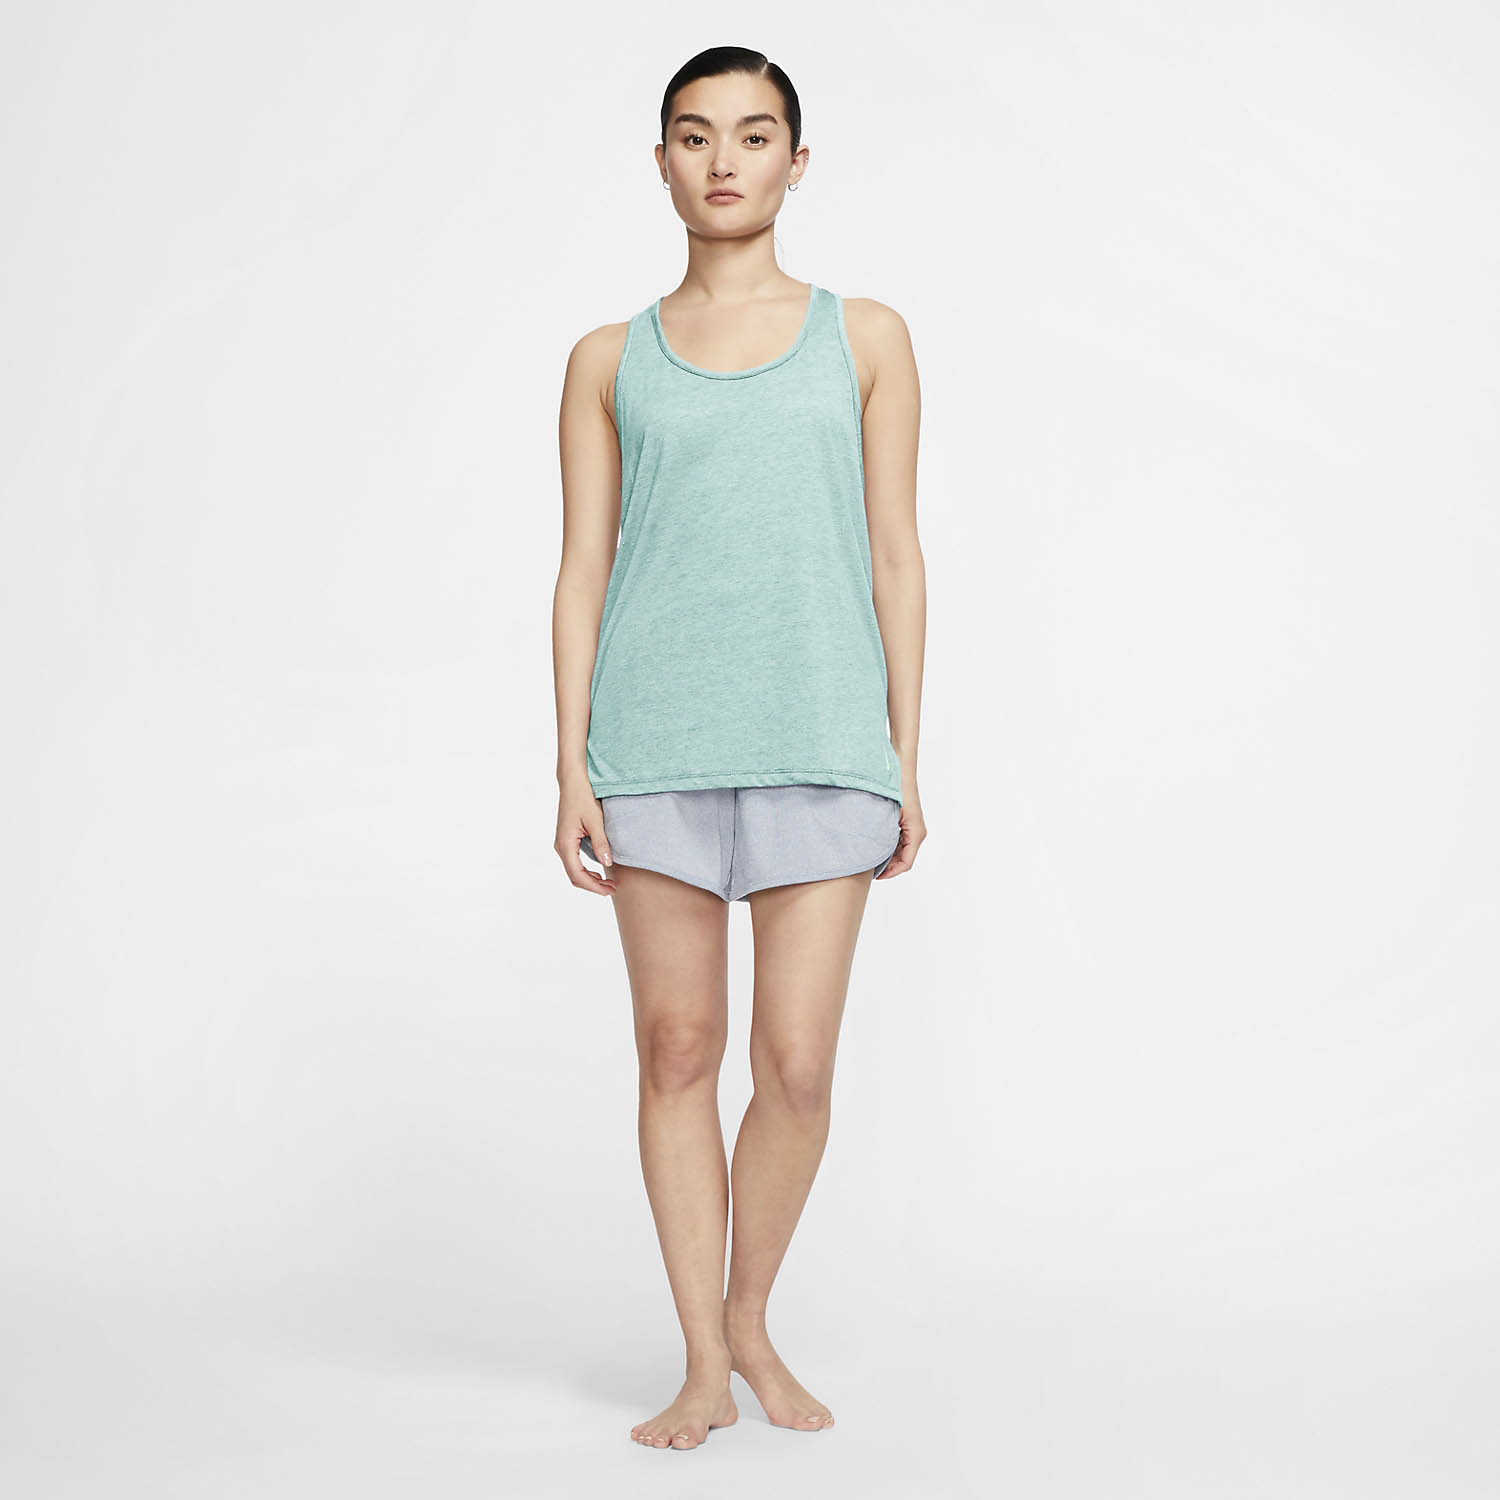 Nike Yoga Tank - Teal Tint/Heater Barely Green/Barely Green